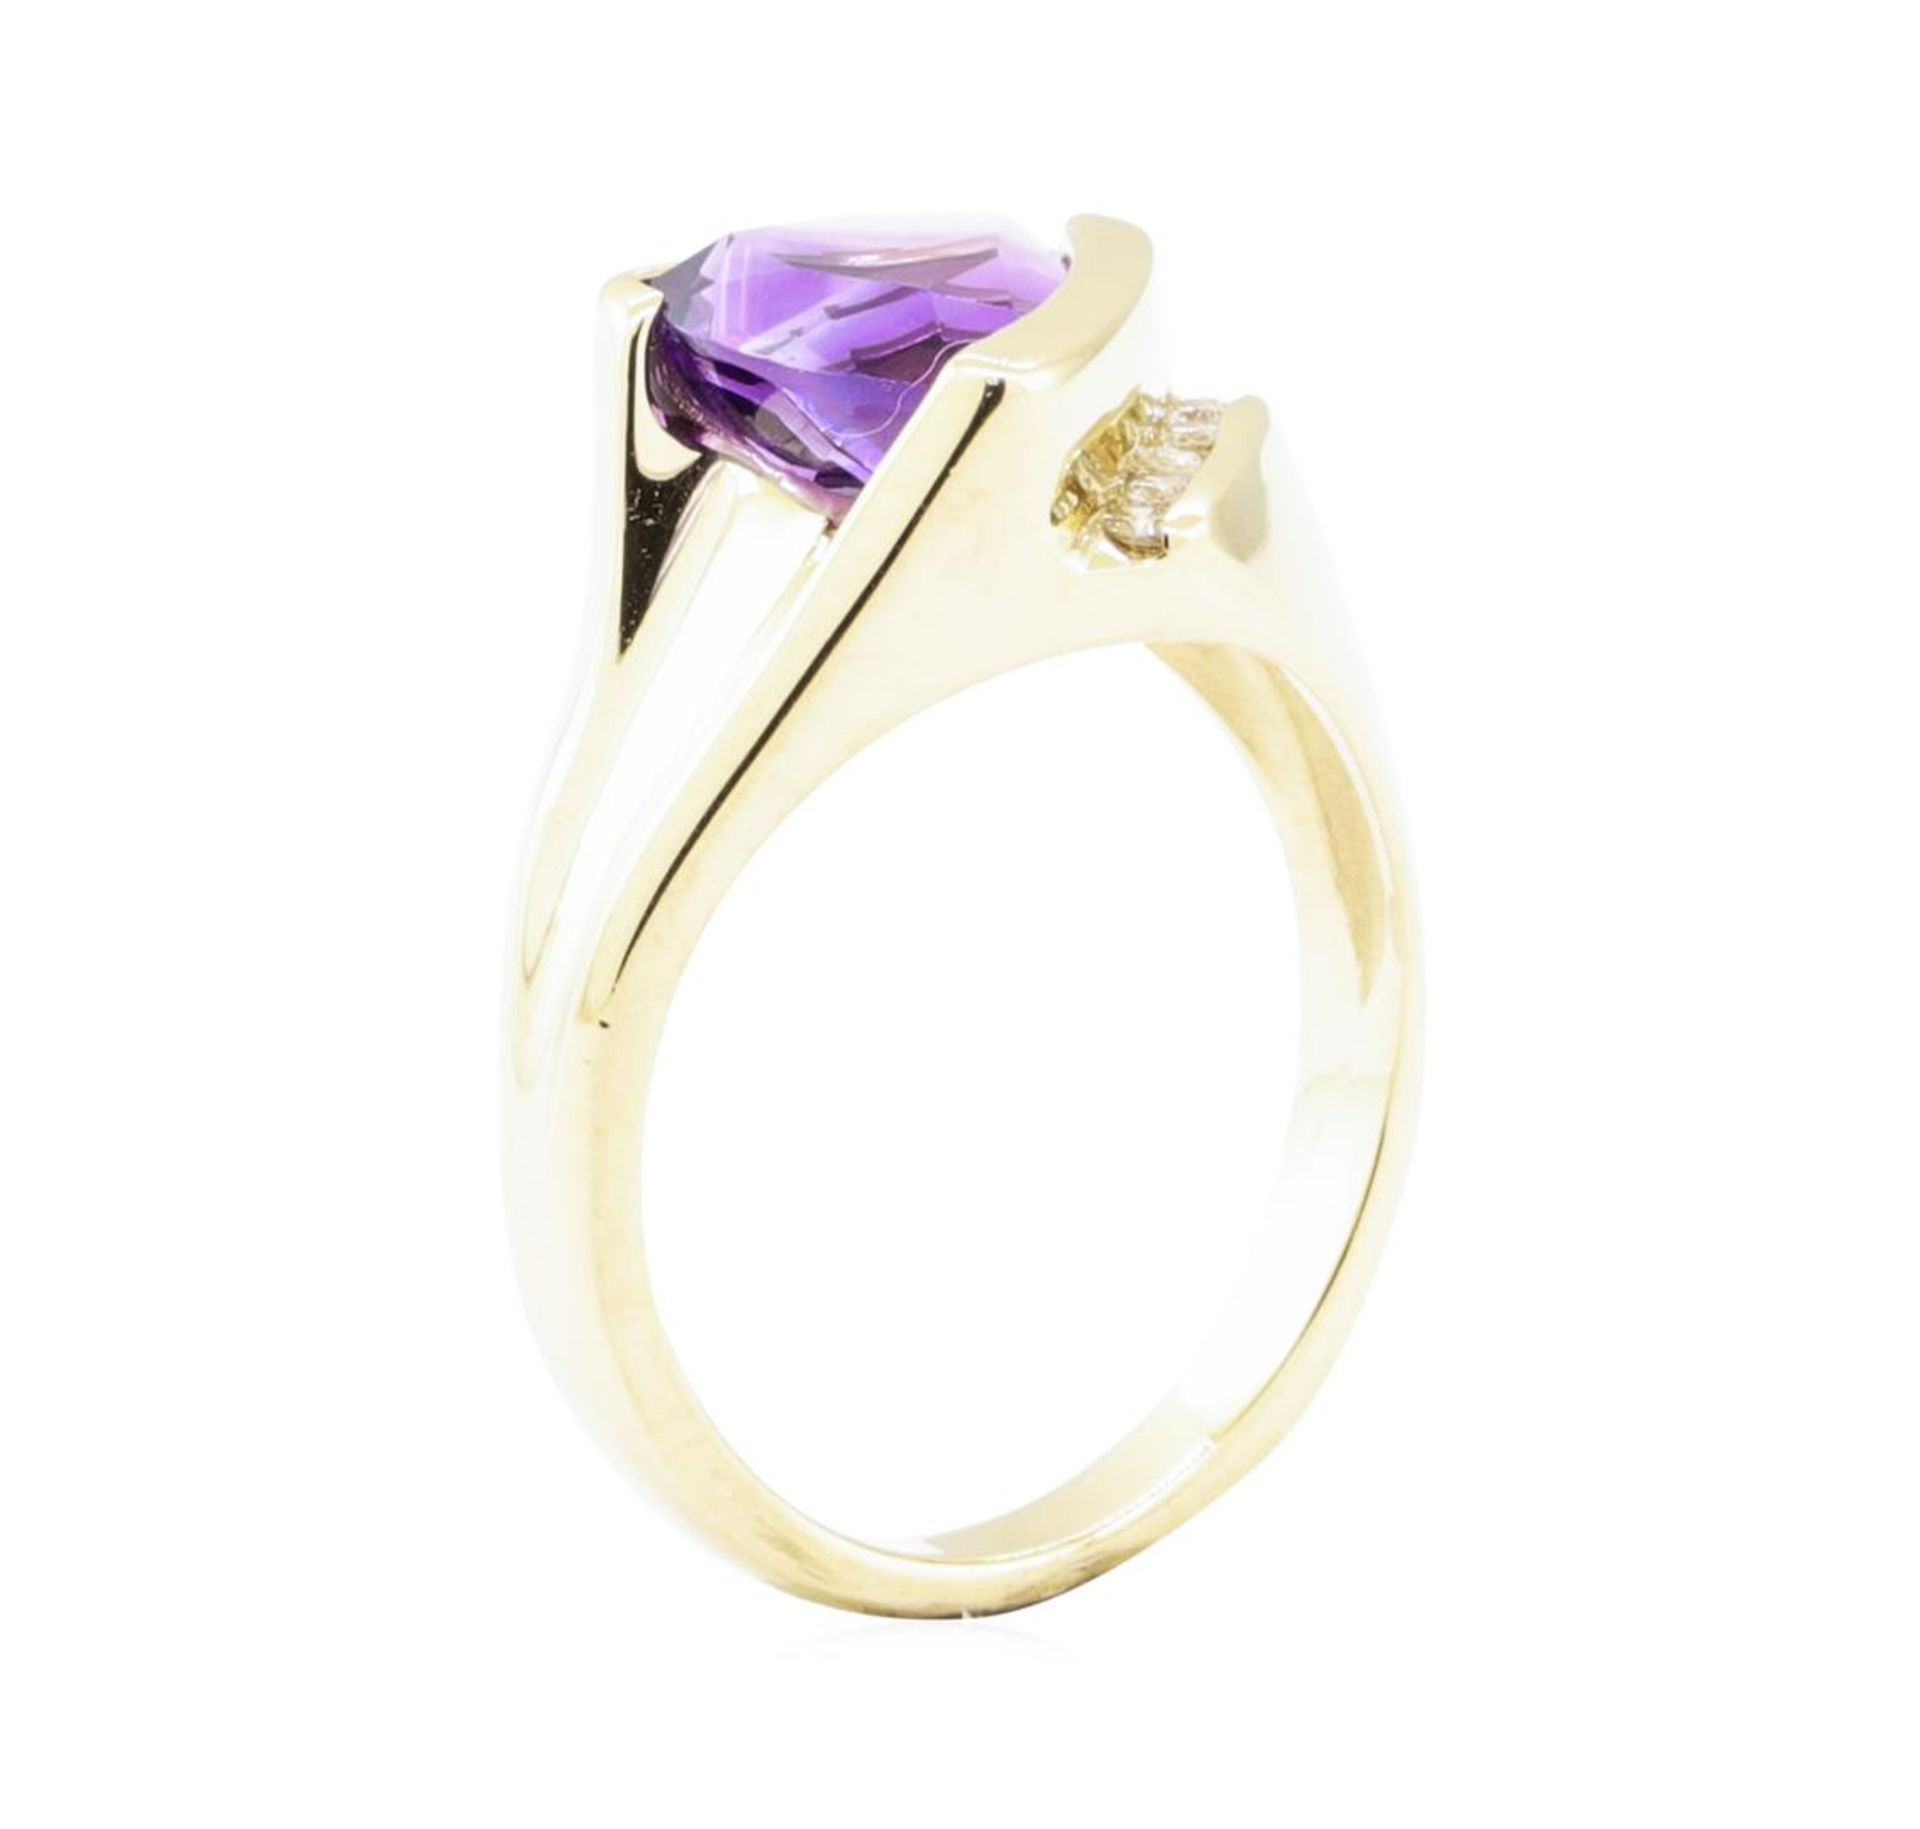 1.70 ctw Amethyst and Diamond Ring - 14KT Yellow Gold - Image 4 of 4